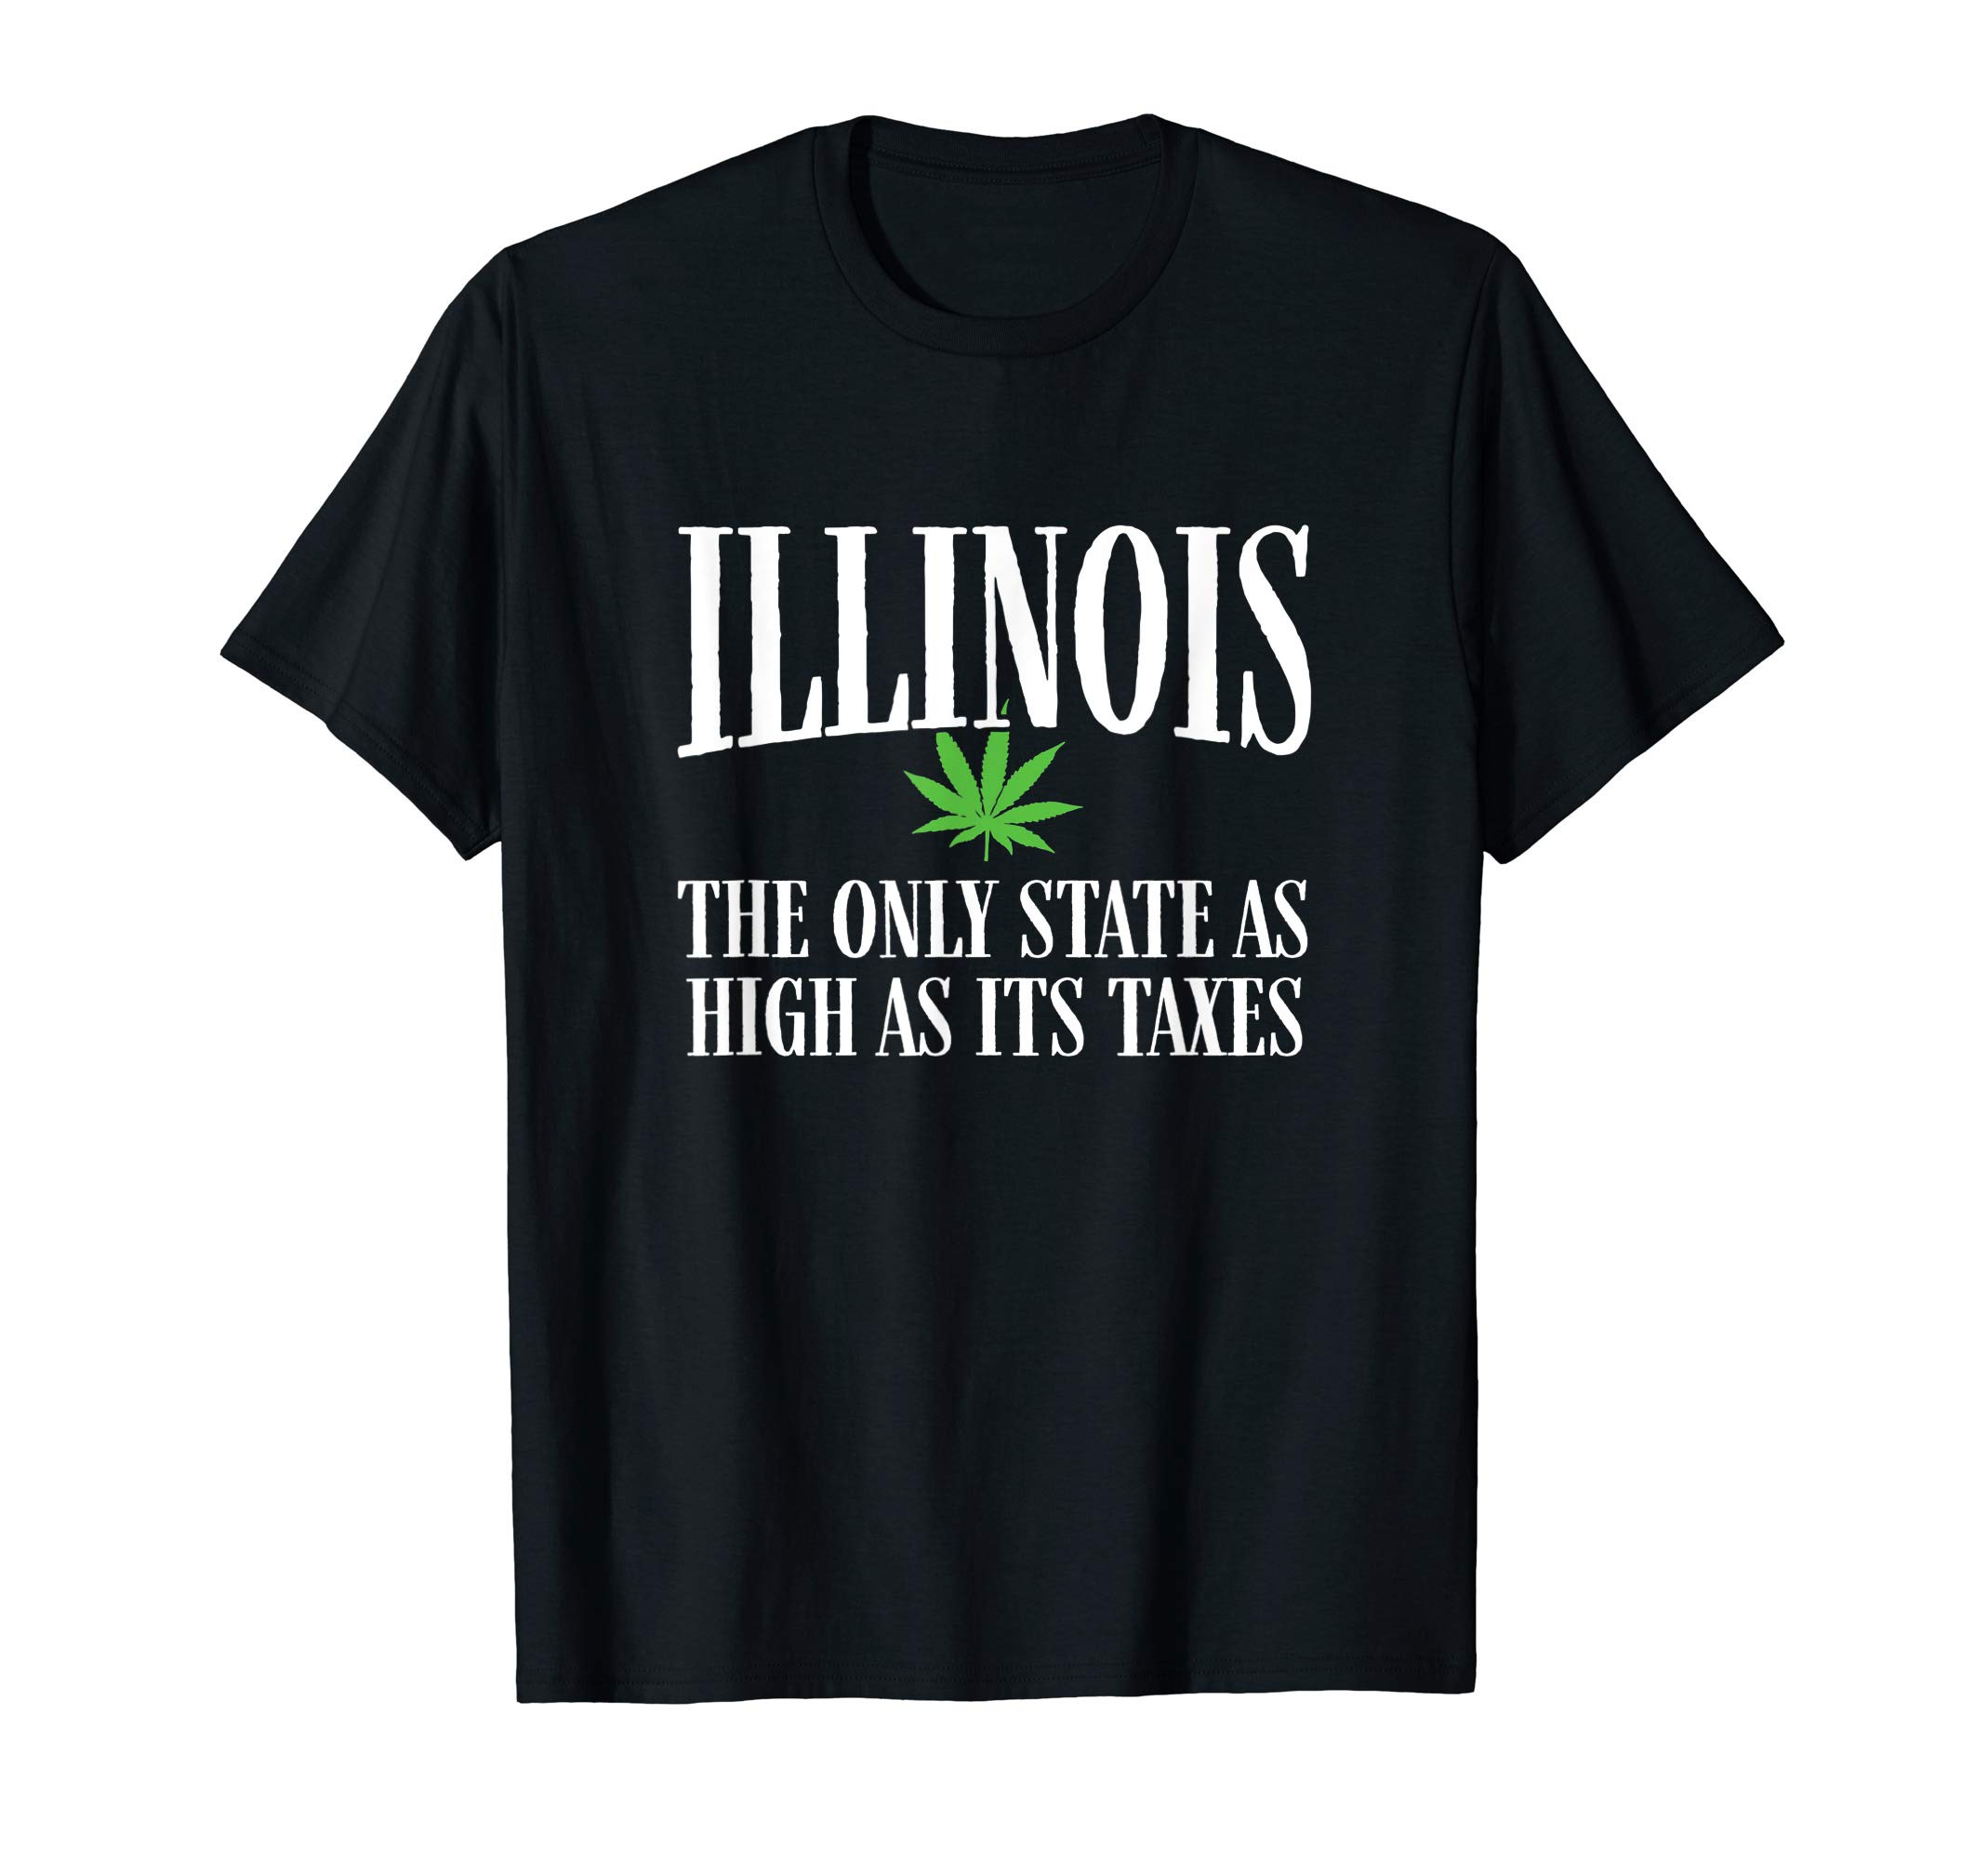 The Only State As High As Its Taxes – Illinois Weed T-Shirt